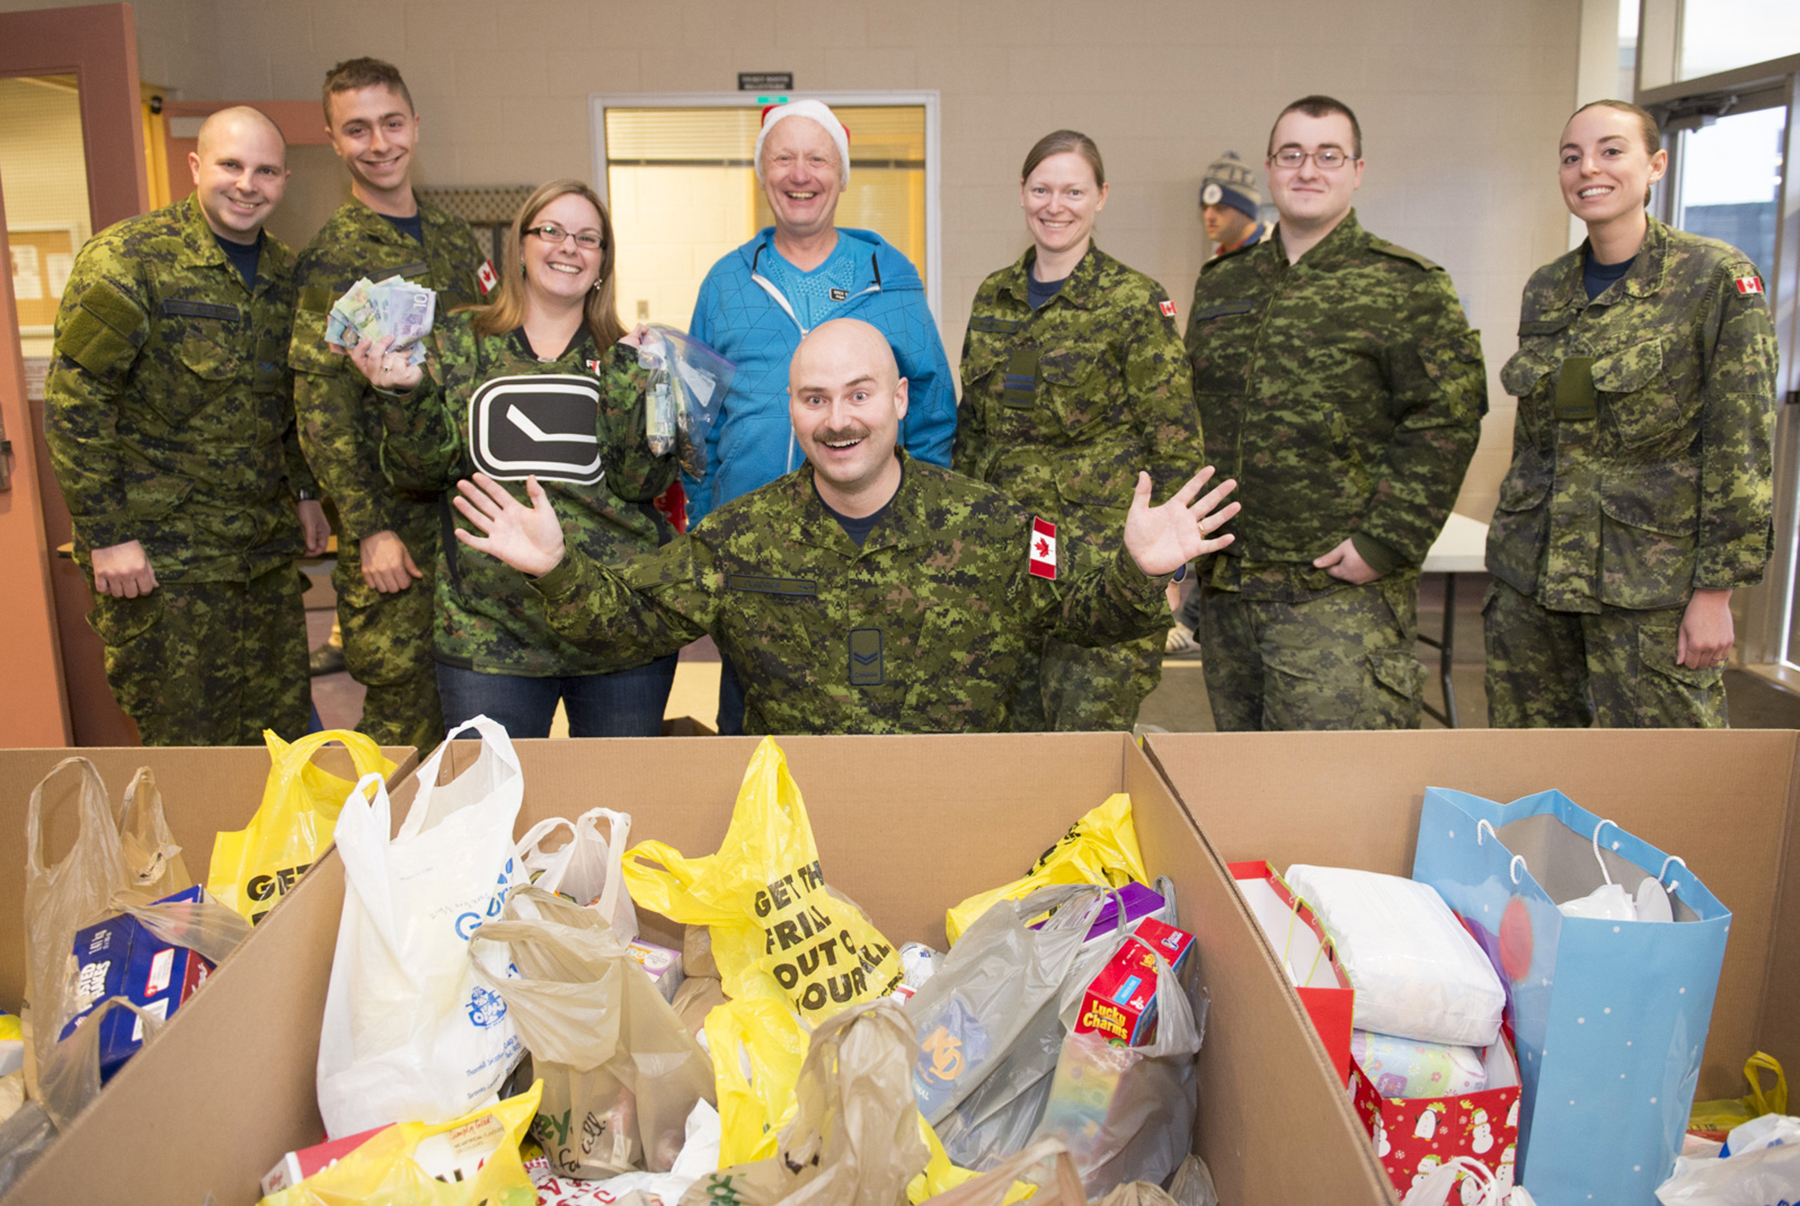 Six people wearing disruptive pattern uniforms and one civilian, stand behind a man, also wearing a disruptive pattern uniform, who is gesturing at cardboard boxes filled with bags of foodstuffs.